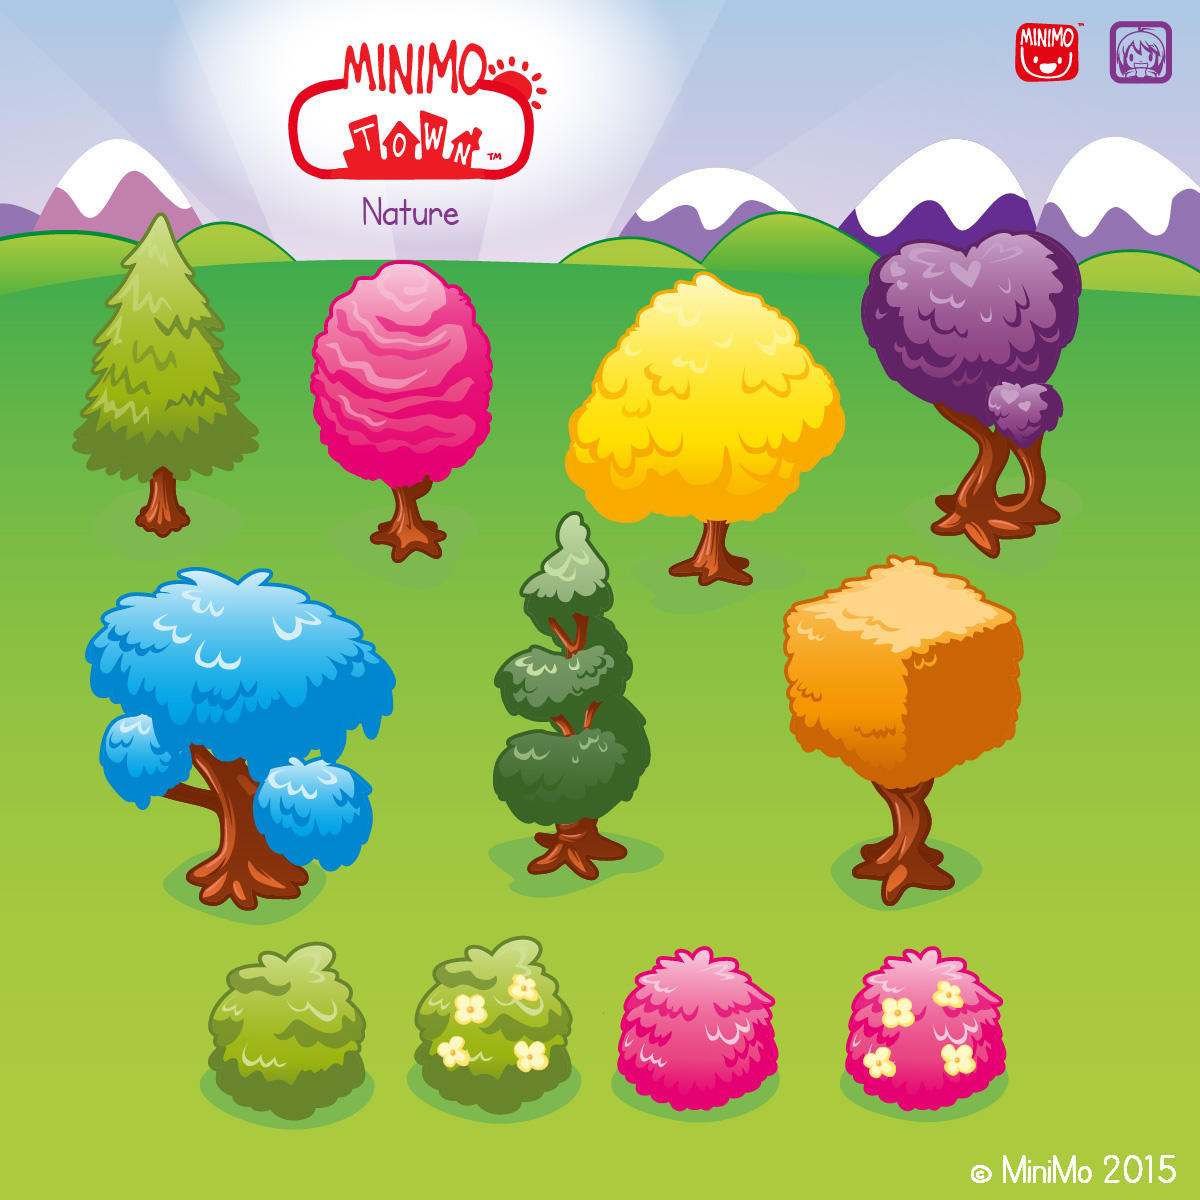 minimo town minimo game Educational Game children buildings citizens decoration Items graphic assets Game Assets